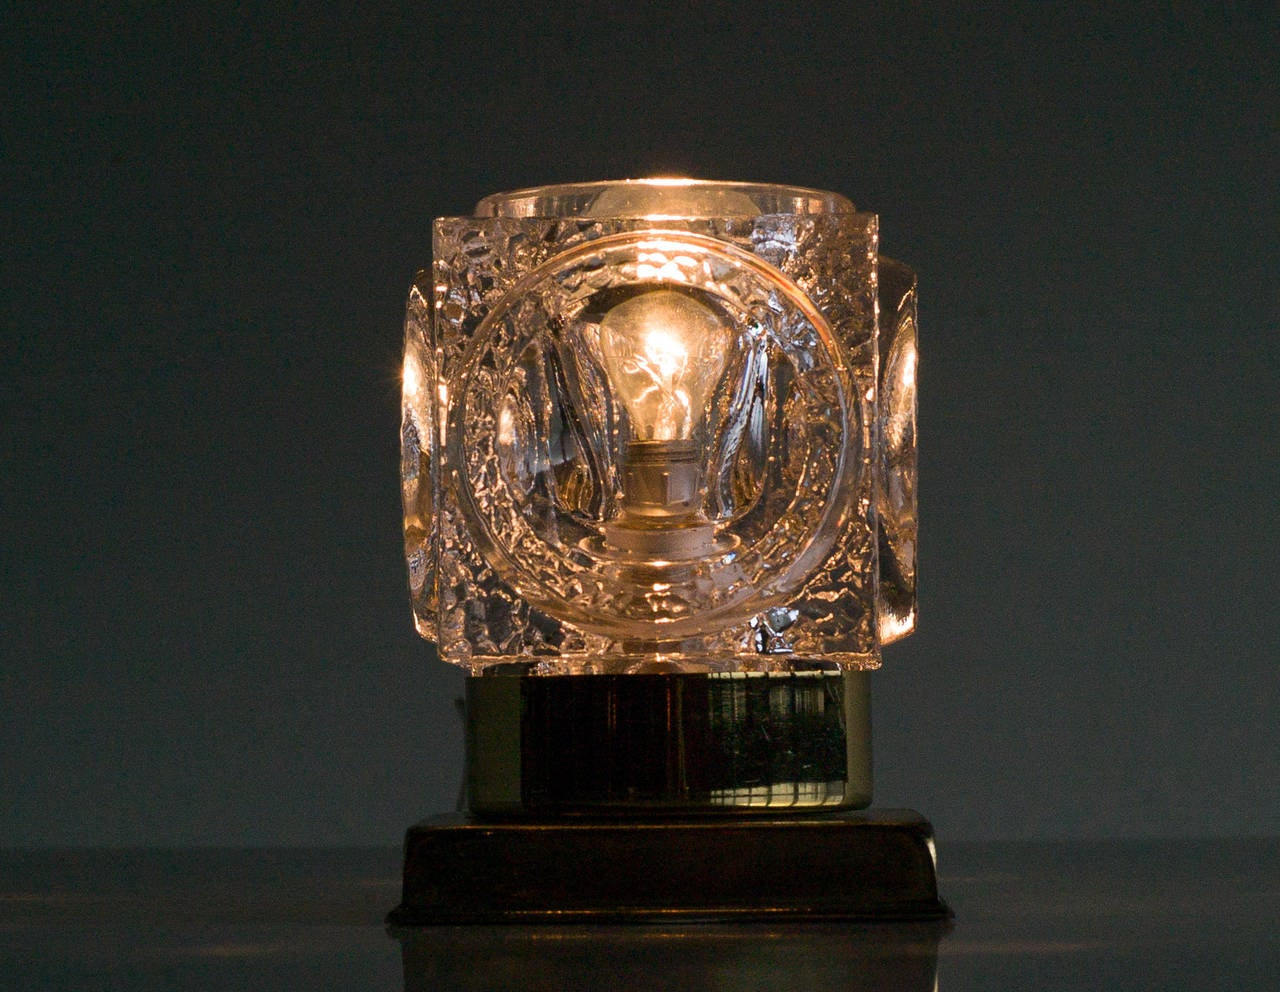 Peill and Putzler Ice Cube Table Lamp For Sale at 1stdibs